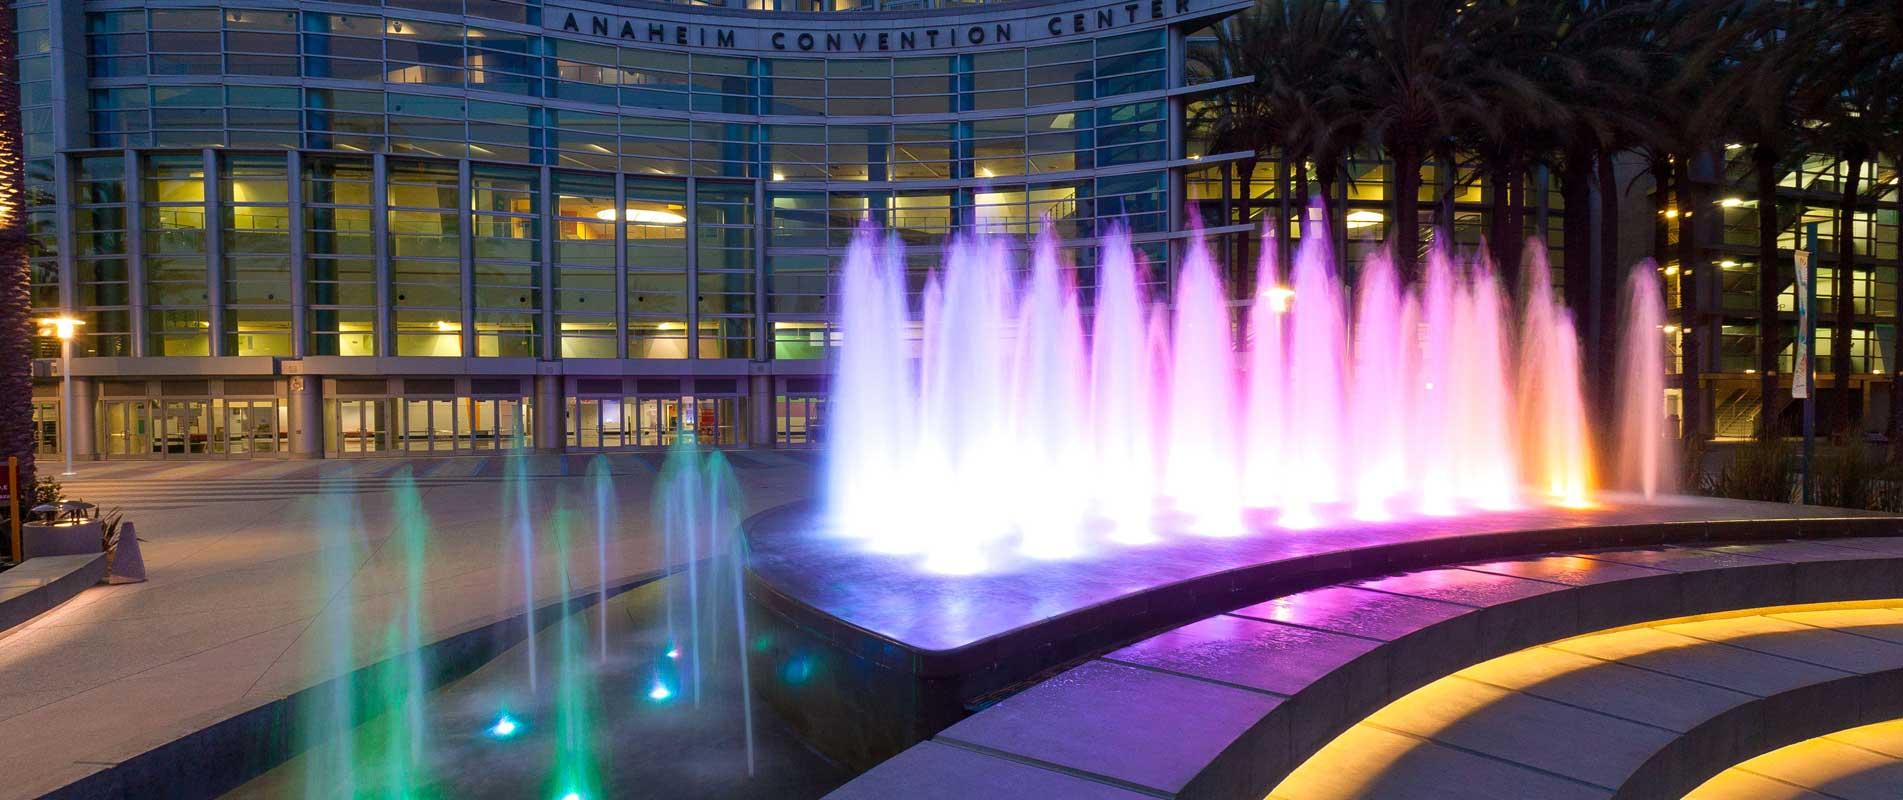 Featured Case Study Anaheim Convention Center